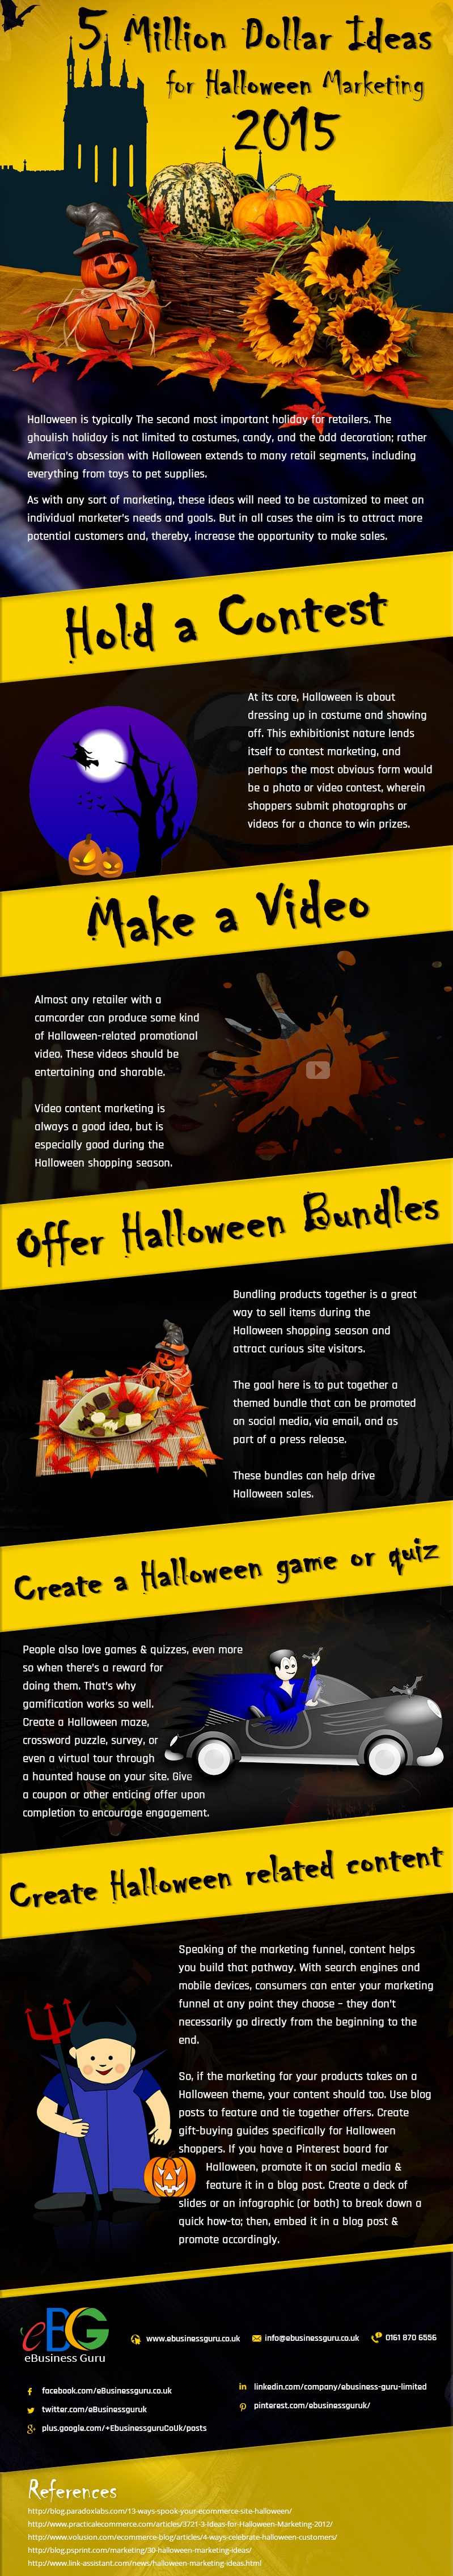 5 Million Dollar Ideas For Halloween Marketing 2015 - Infographic